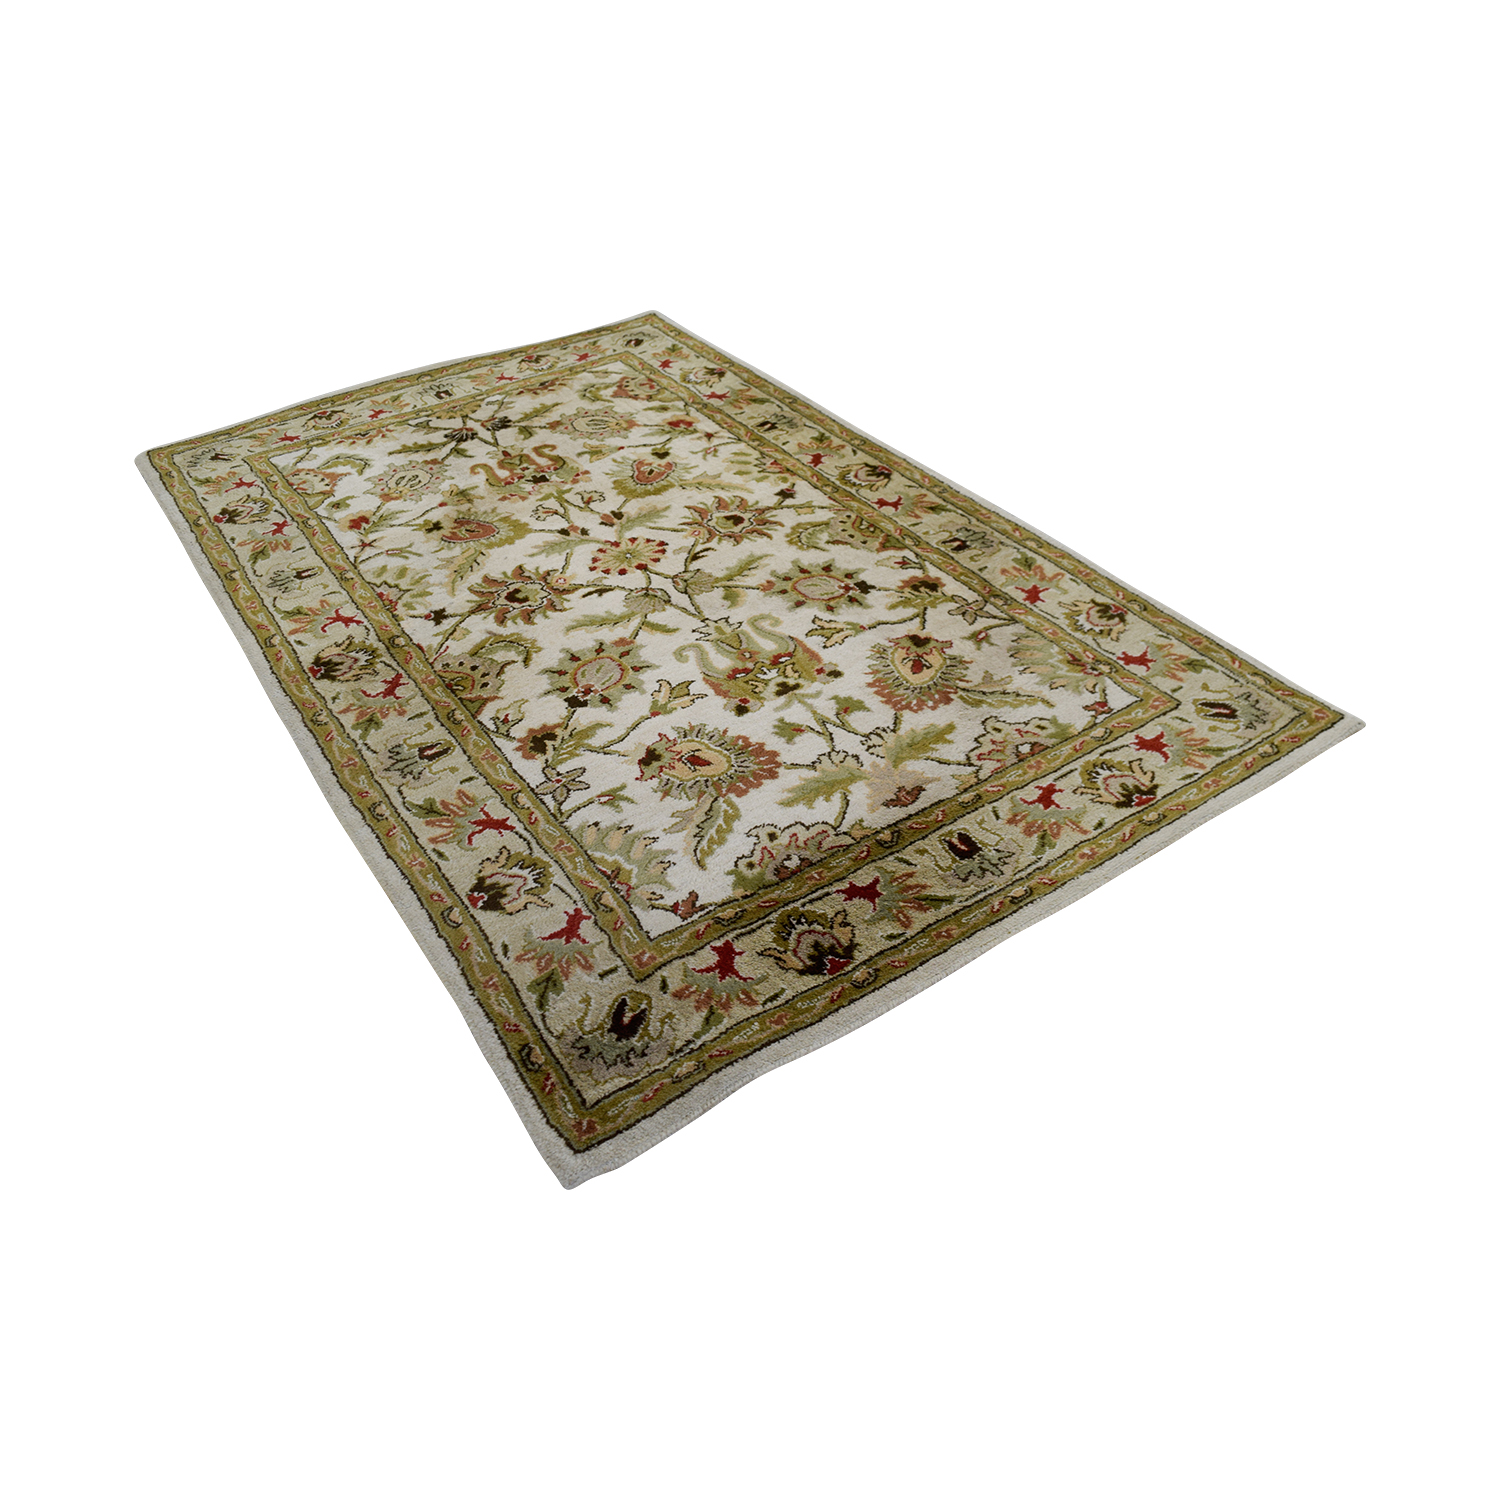 buy Surya Carpets Kaleen Ivory and Beige Wool Carpet Surya Carpets Rugs